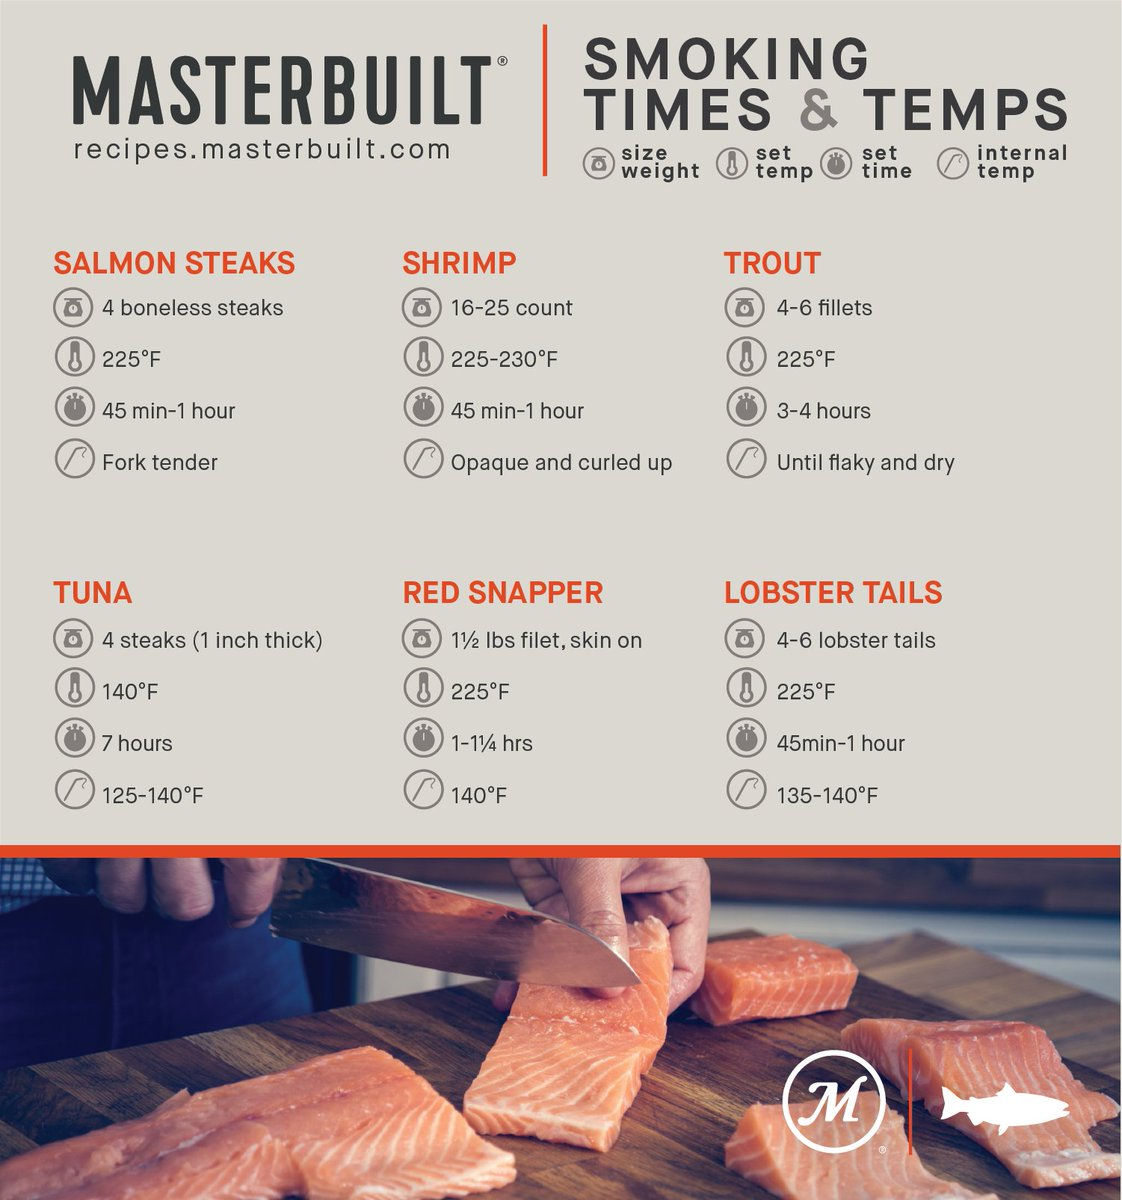 Masterbuilt V Twitter Retweet If You Love Smoked Seafood Comment